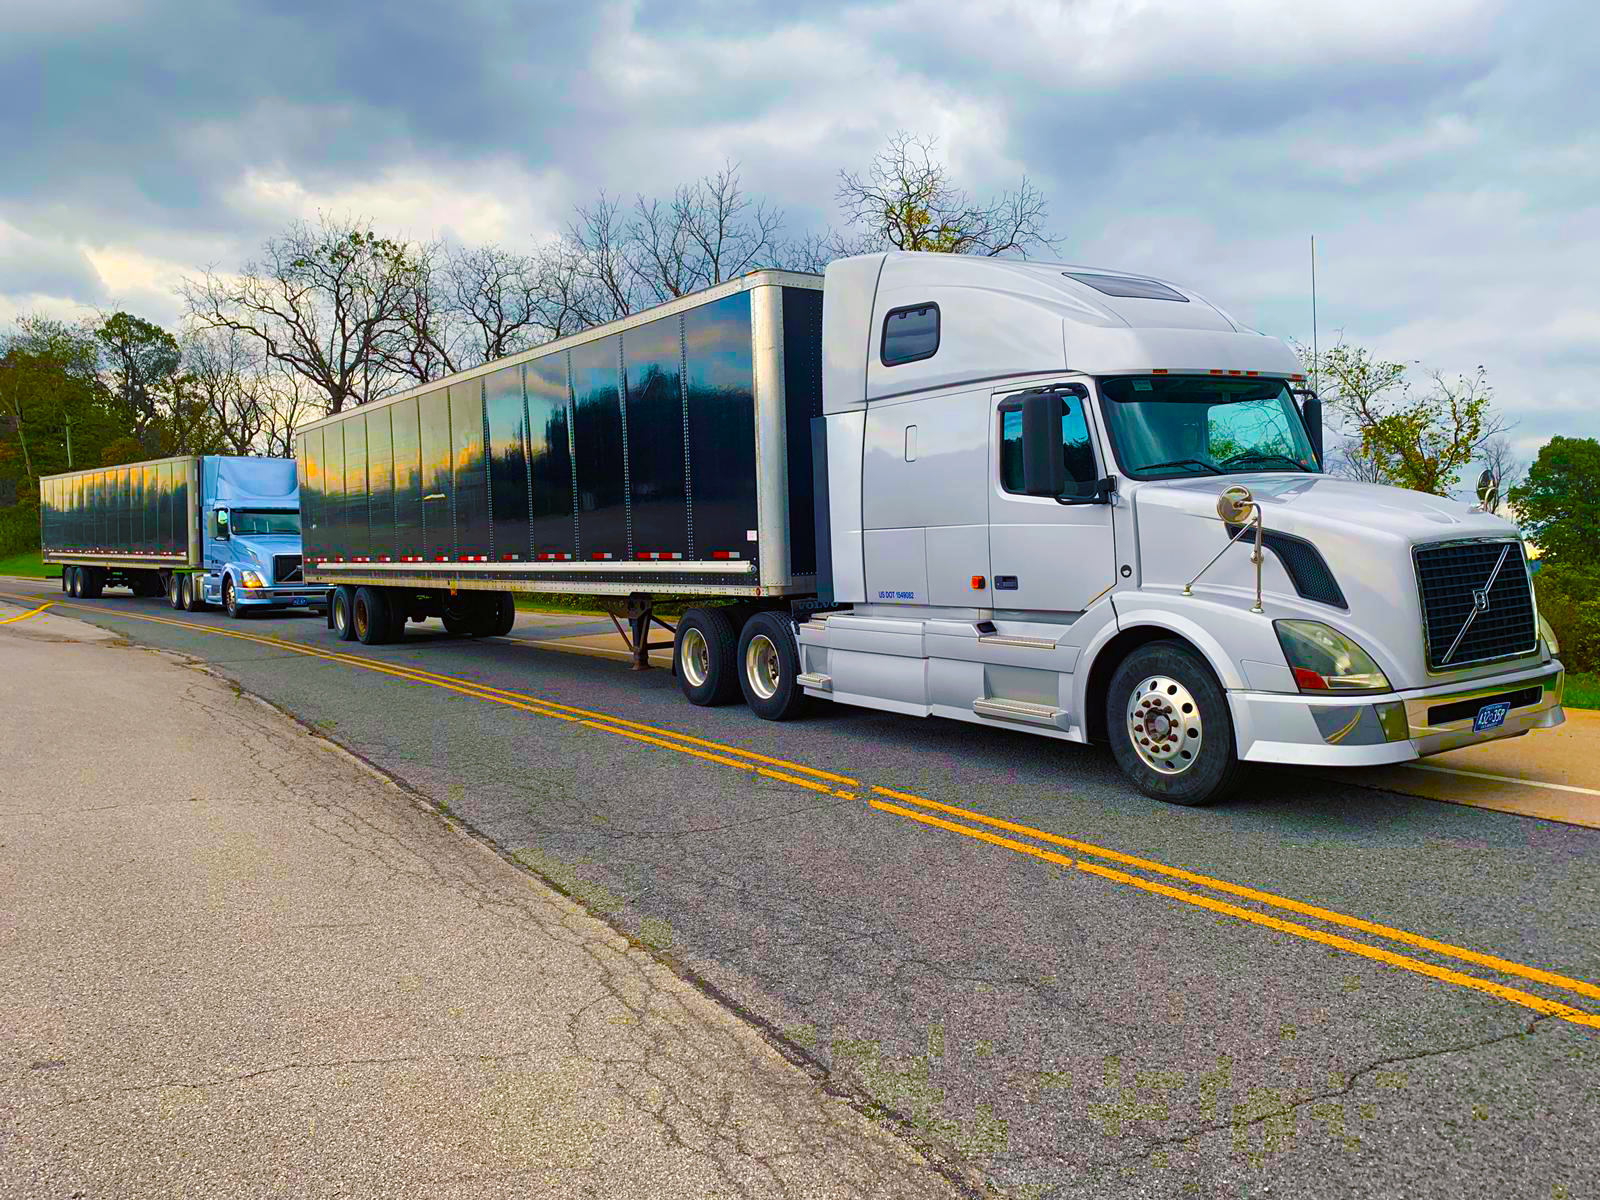 Truck platoons, or groups of vehicles traveling together on a roadway in a flock, have the potential to increase both road capacity and fuel efficiency. The adoption of autonomous driving technology could boost these benefits even more.